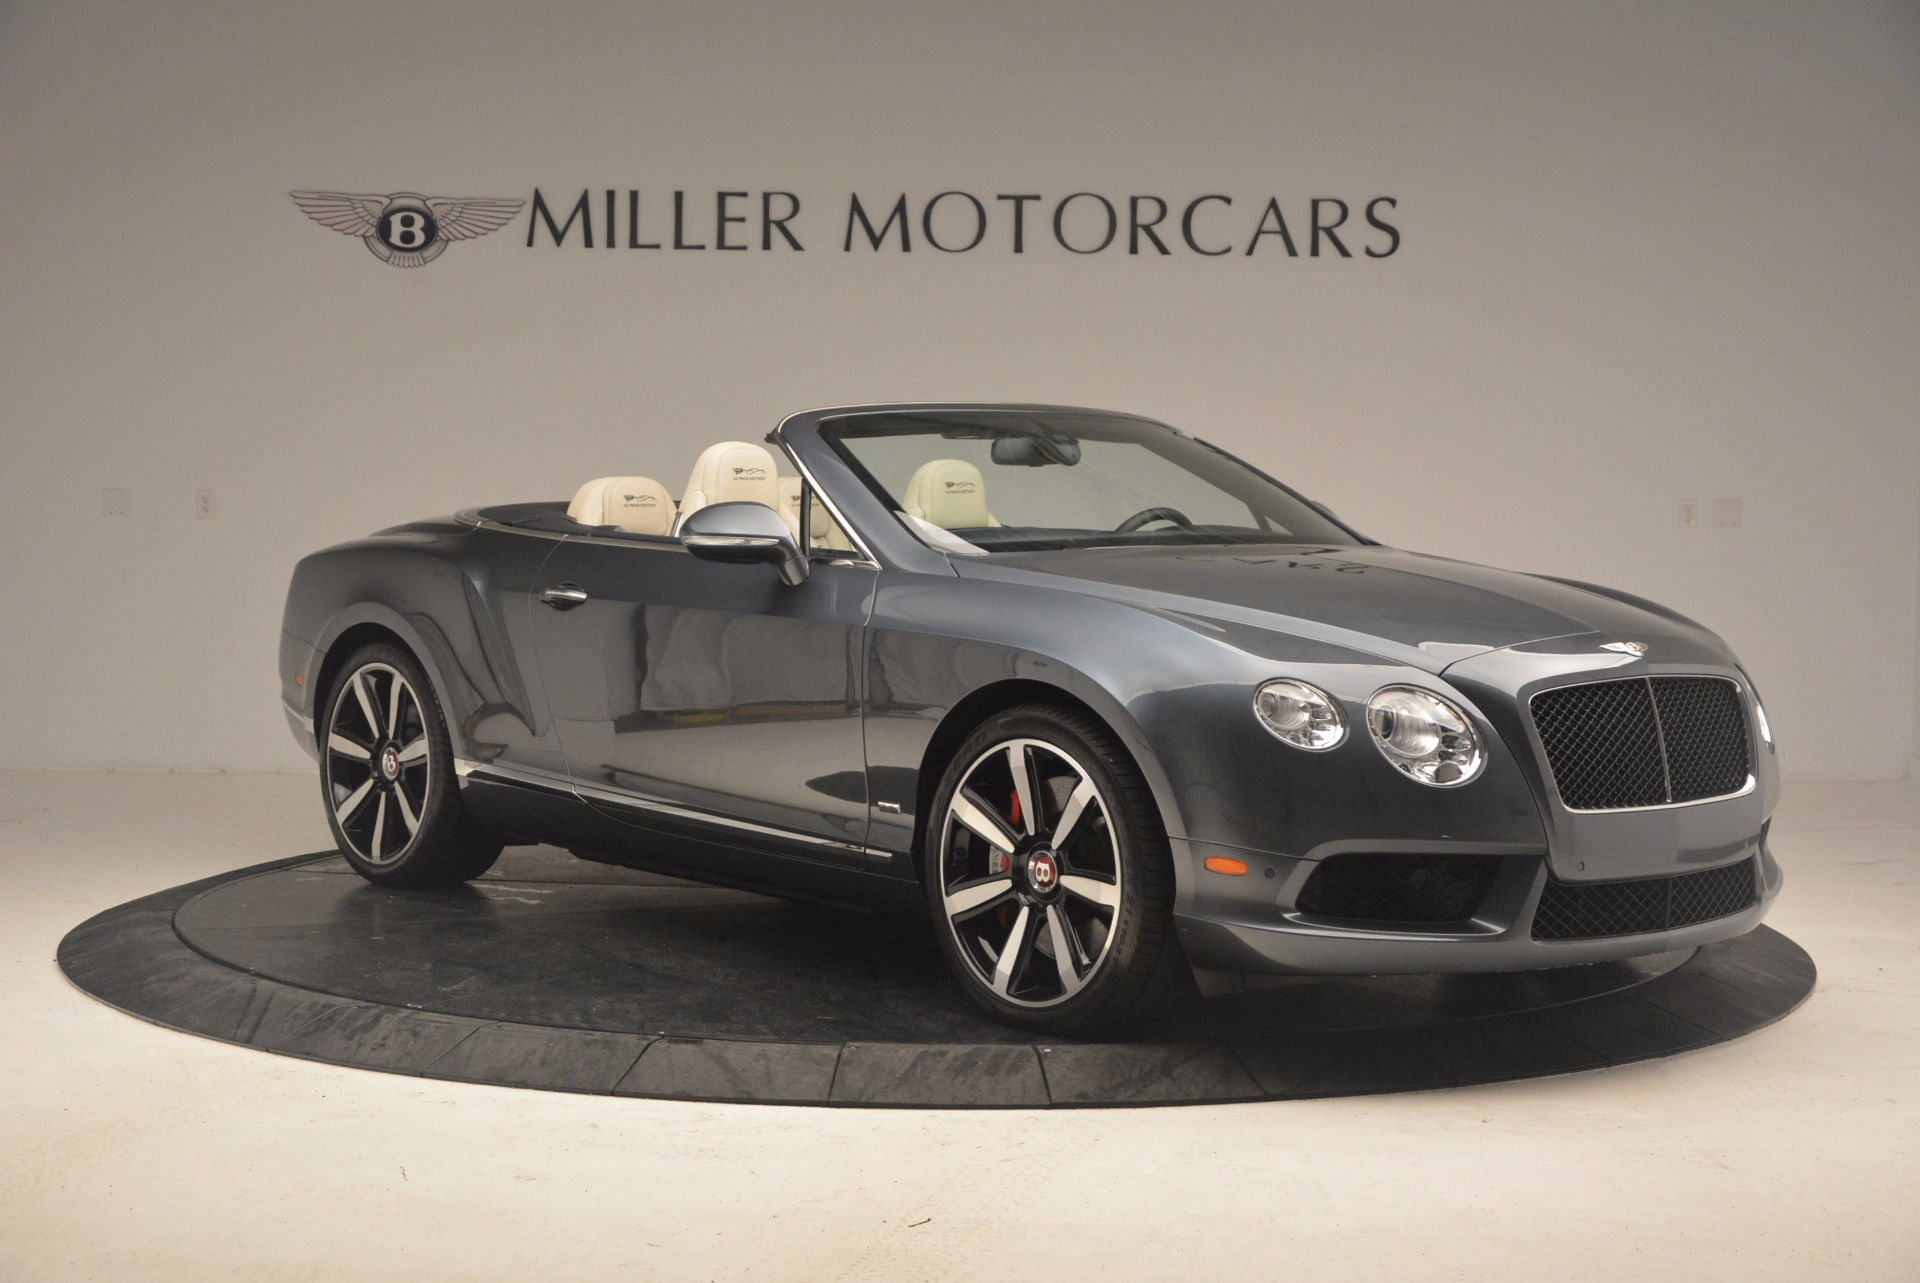 Used 2013 Bentley Continental GT V8 Le Mans Edition, 1 of 48 For Sale In Greenwich, CT 1288_p10